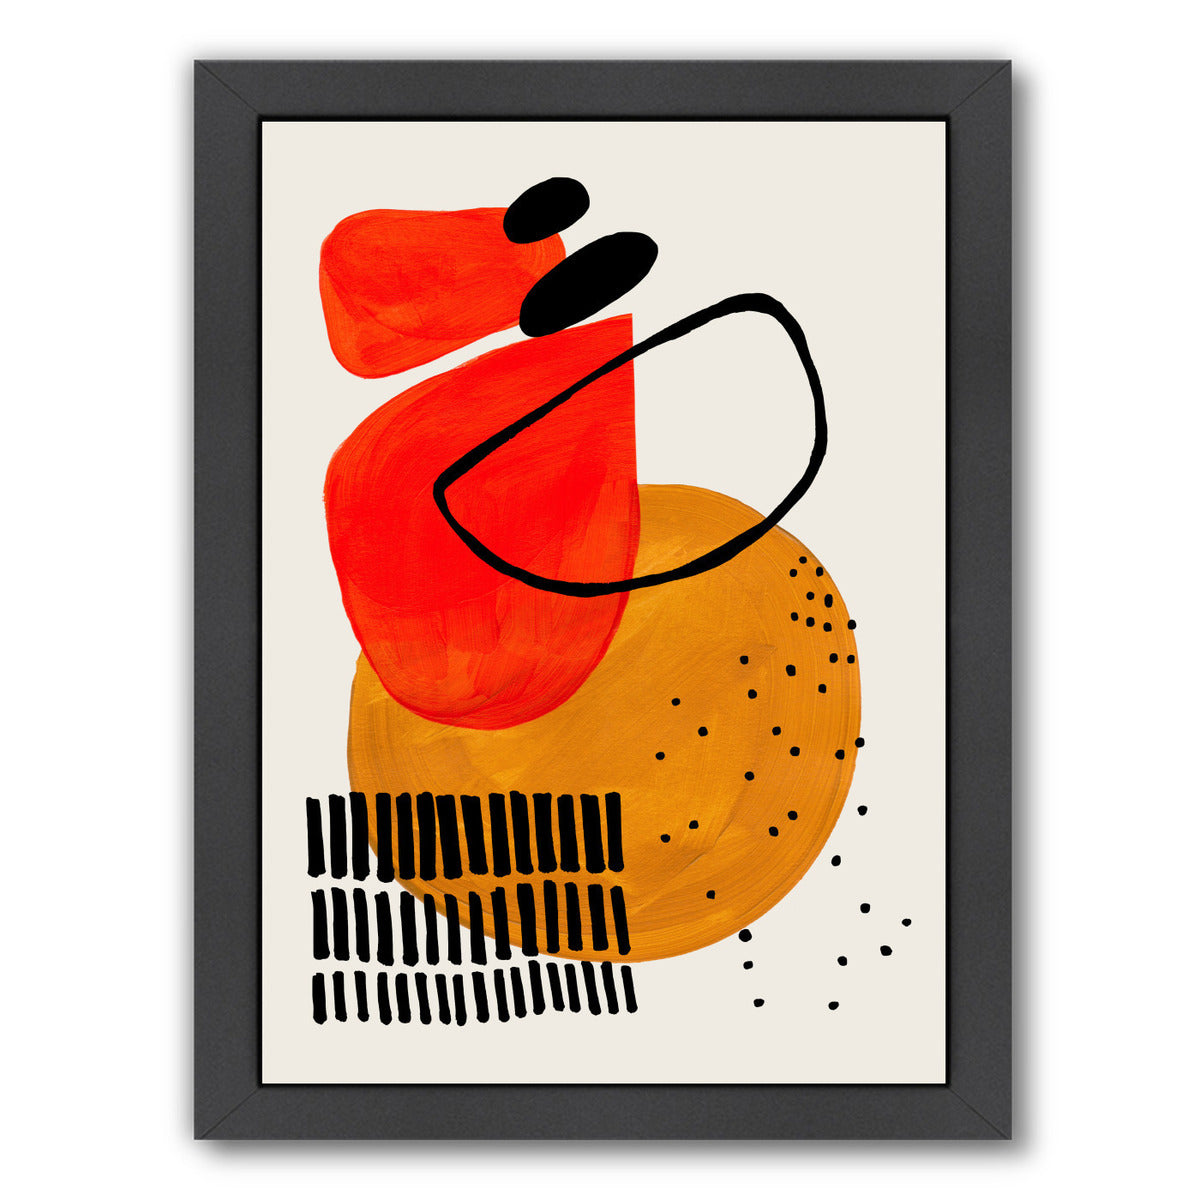 Sunset Orbit By Ejaaz Haniff - Black Framed Print - Wall Art - Americanflat